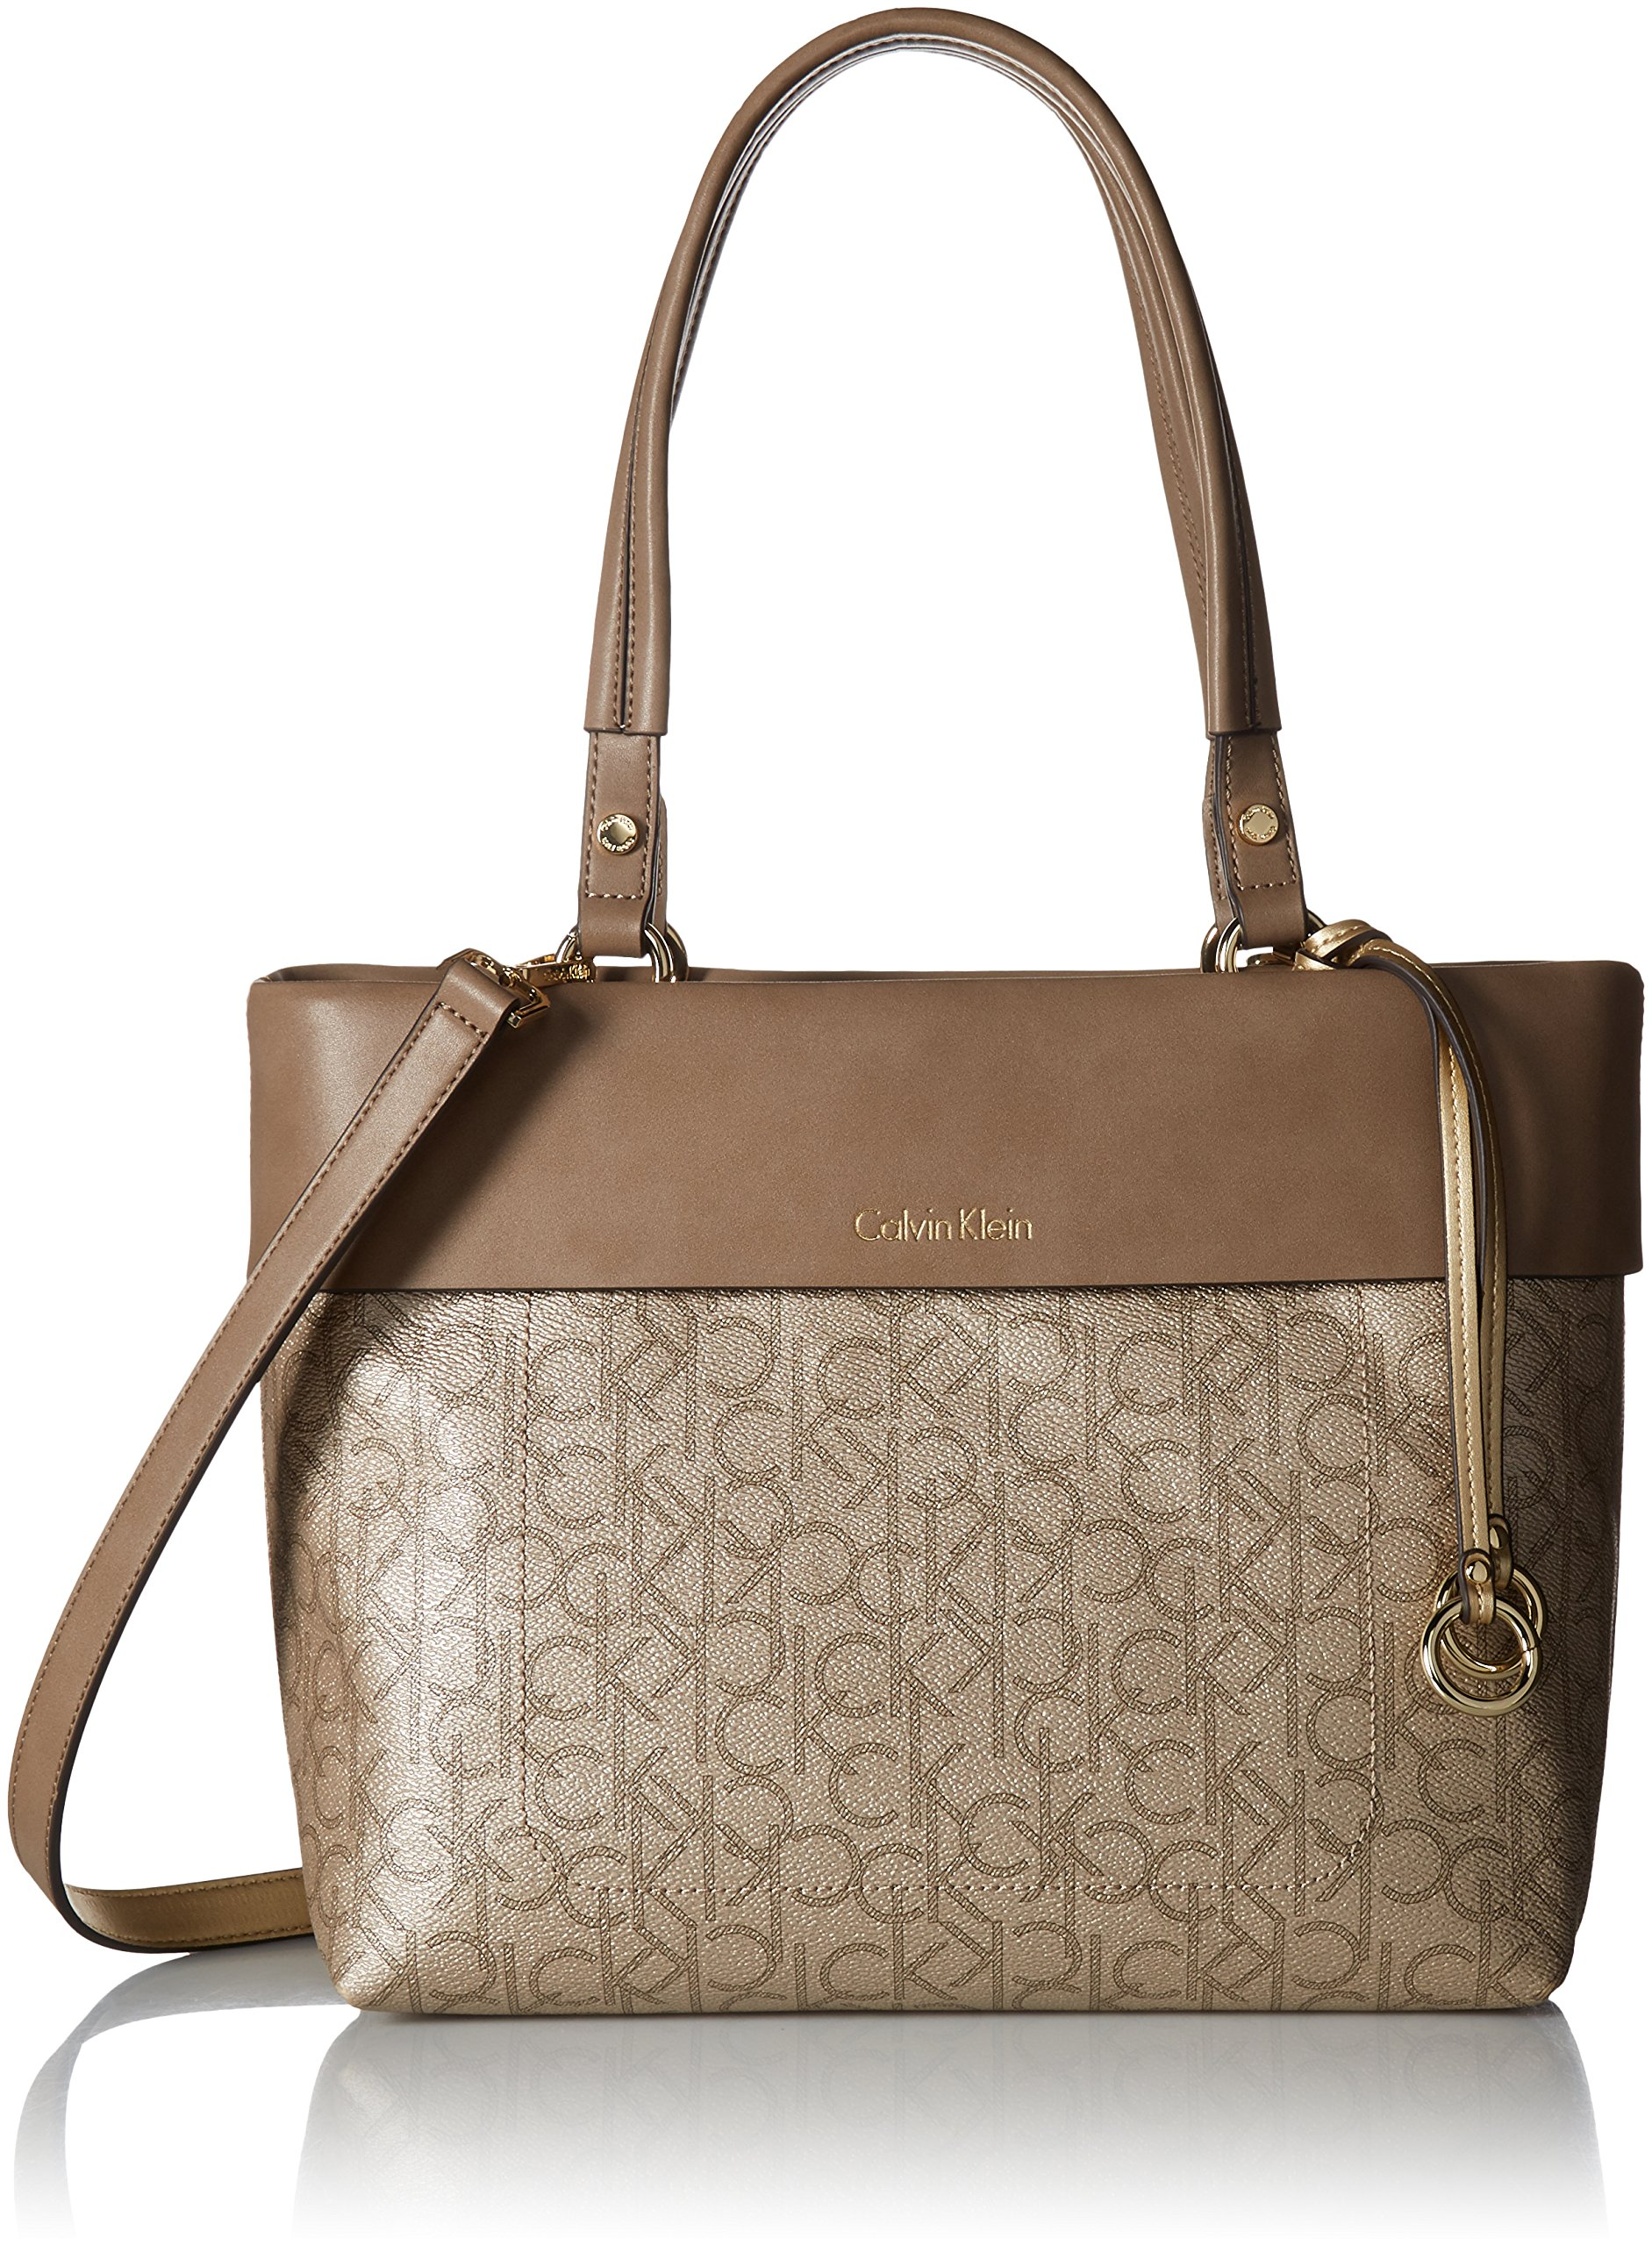 Calvin Klein Patty Signature East/West Tote, Champagne/Metallic Tpe